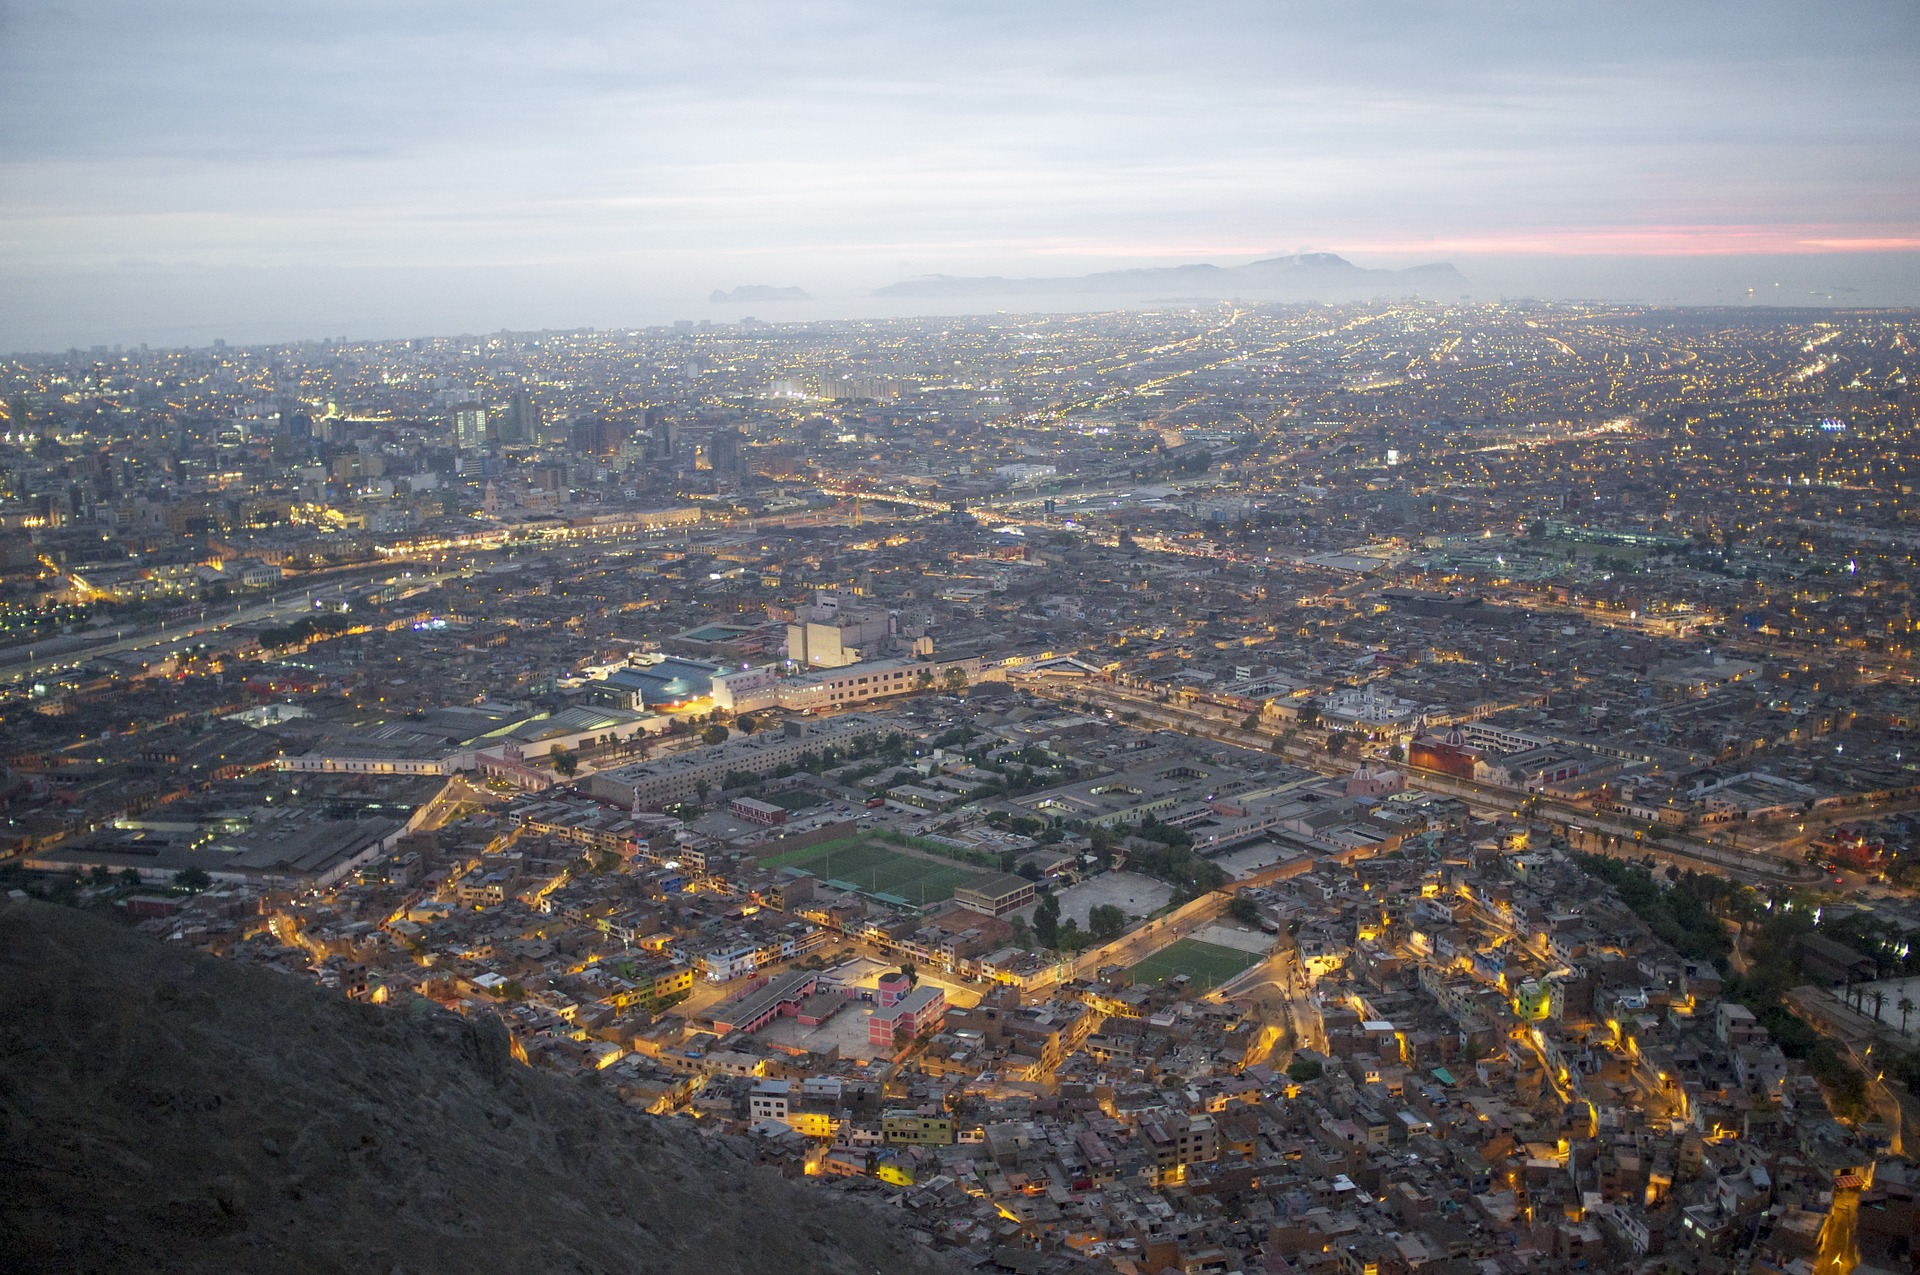 Aerial view of city at dusk